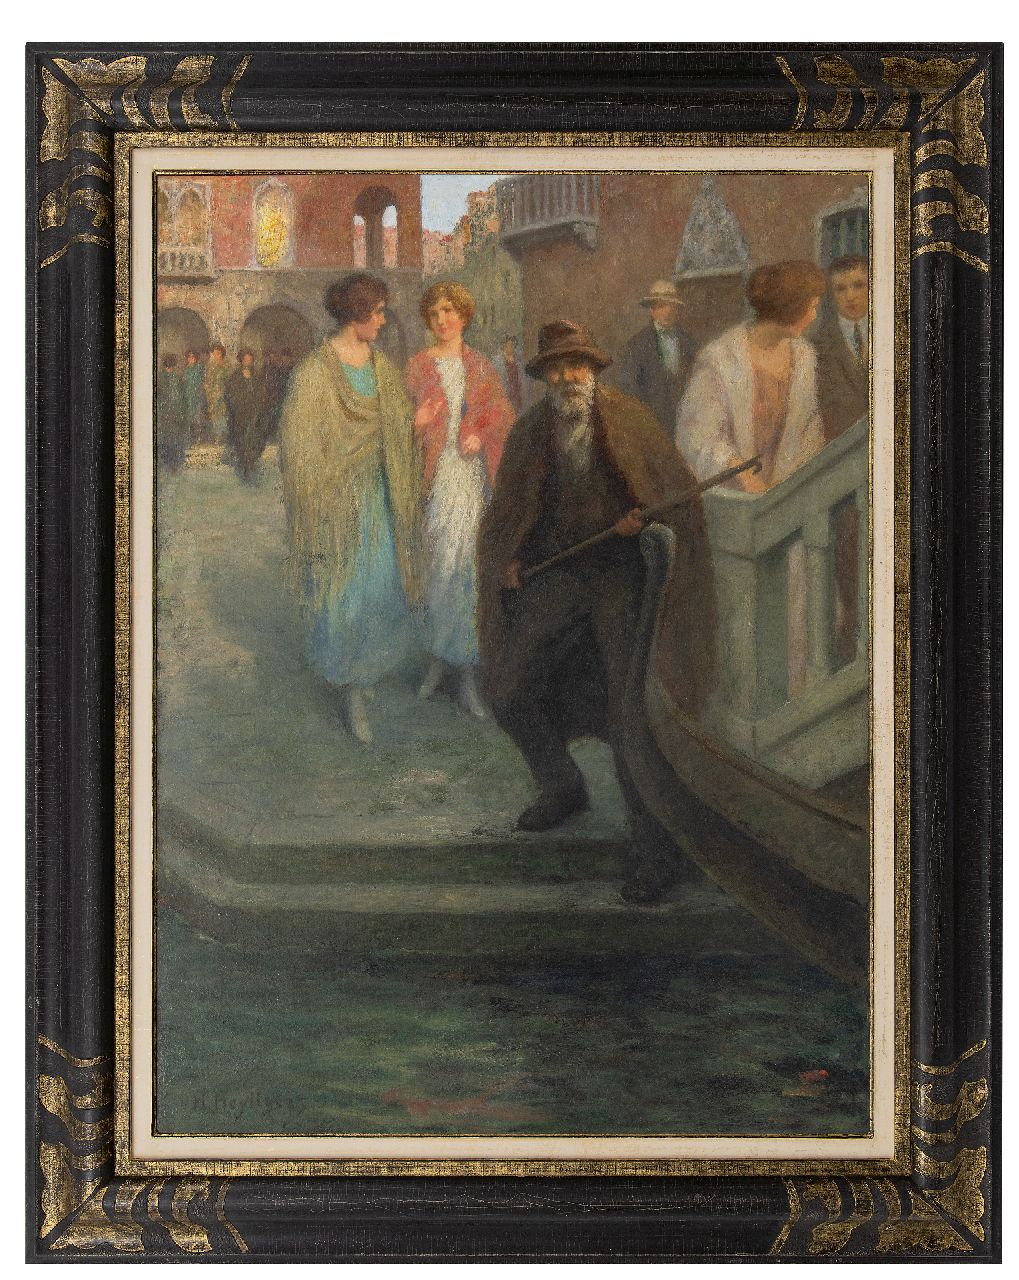 Heijligers H.  | Hendrik 'Henri' Heijligers | Paintings offered for sale | In Venice, oil on canvas 100.3 x 75.4 cm, signed l.l.